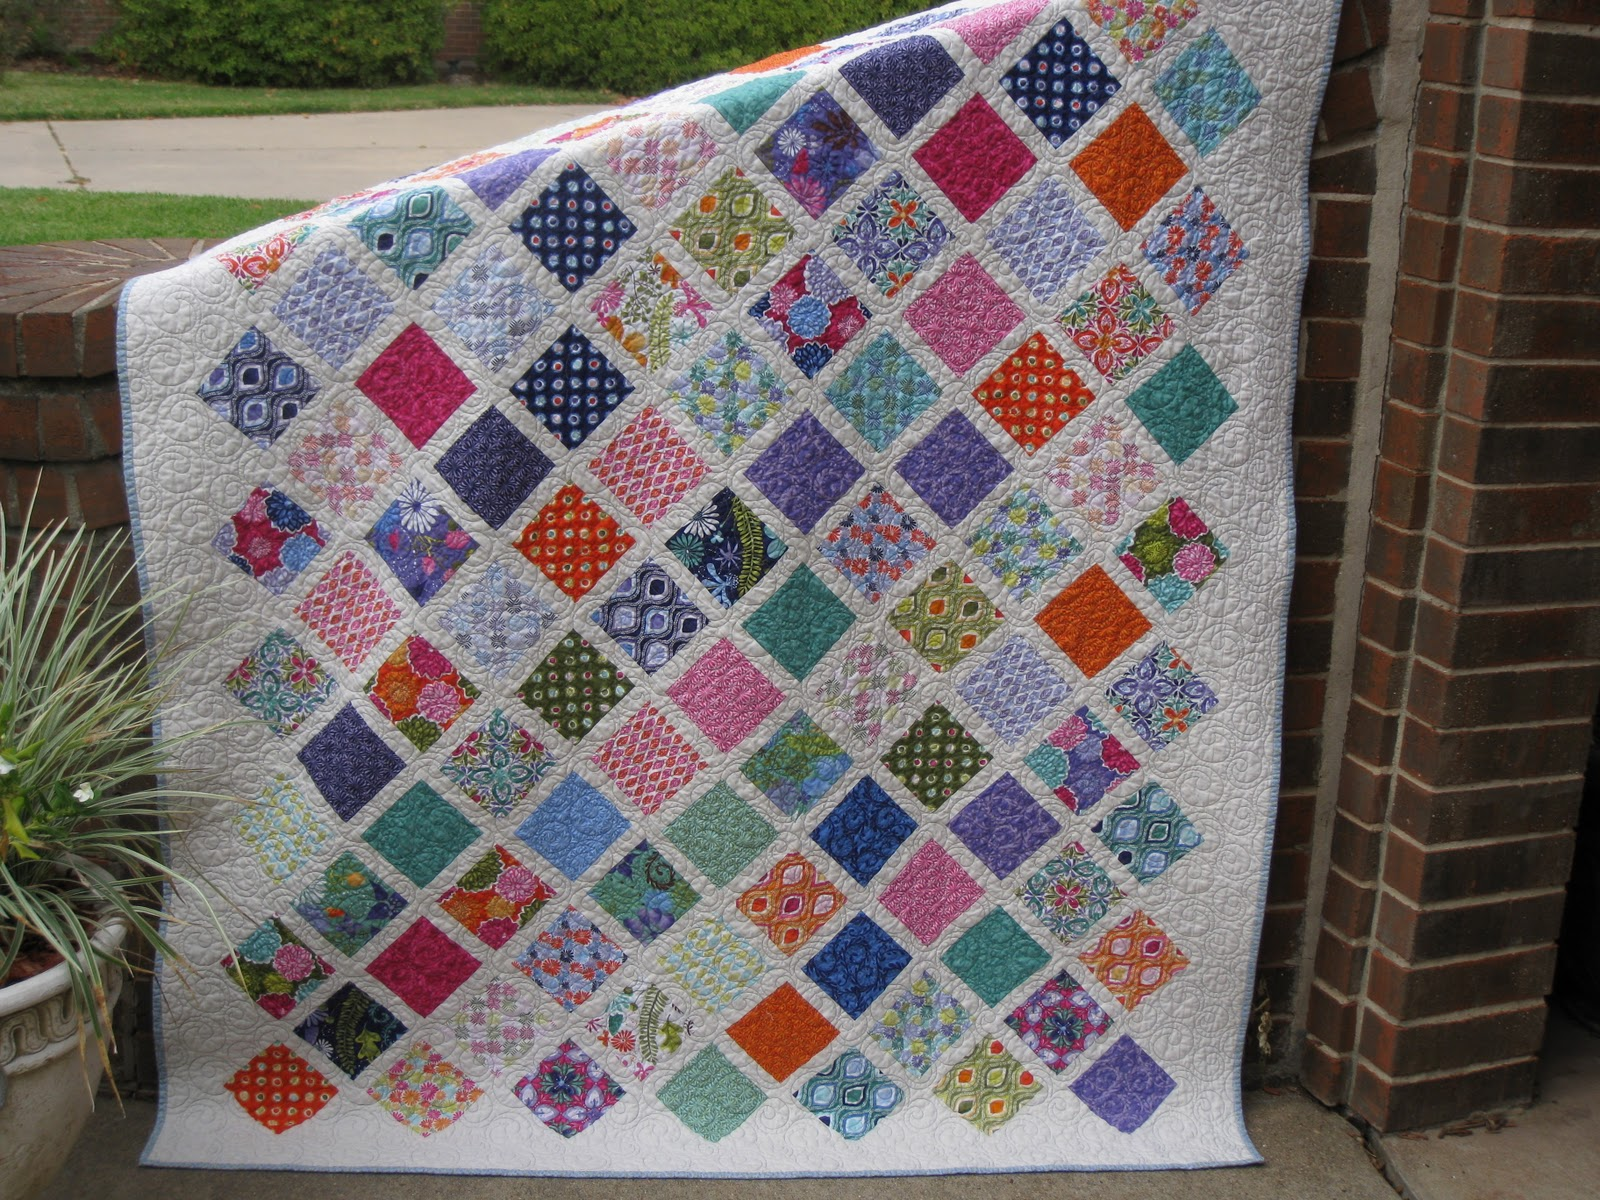 Quilt Patterns From Squares : Millie s Quilting: Two Charm Square Quilts